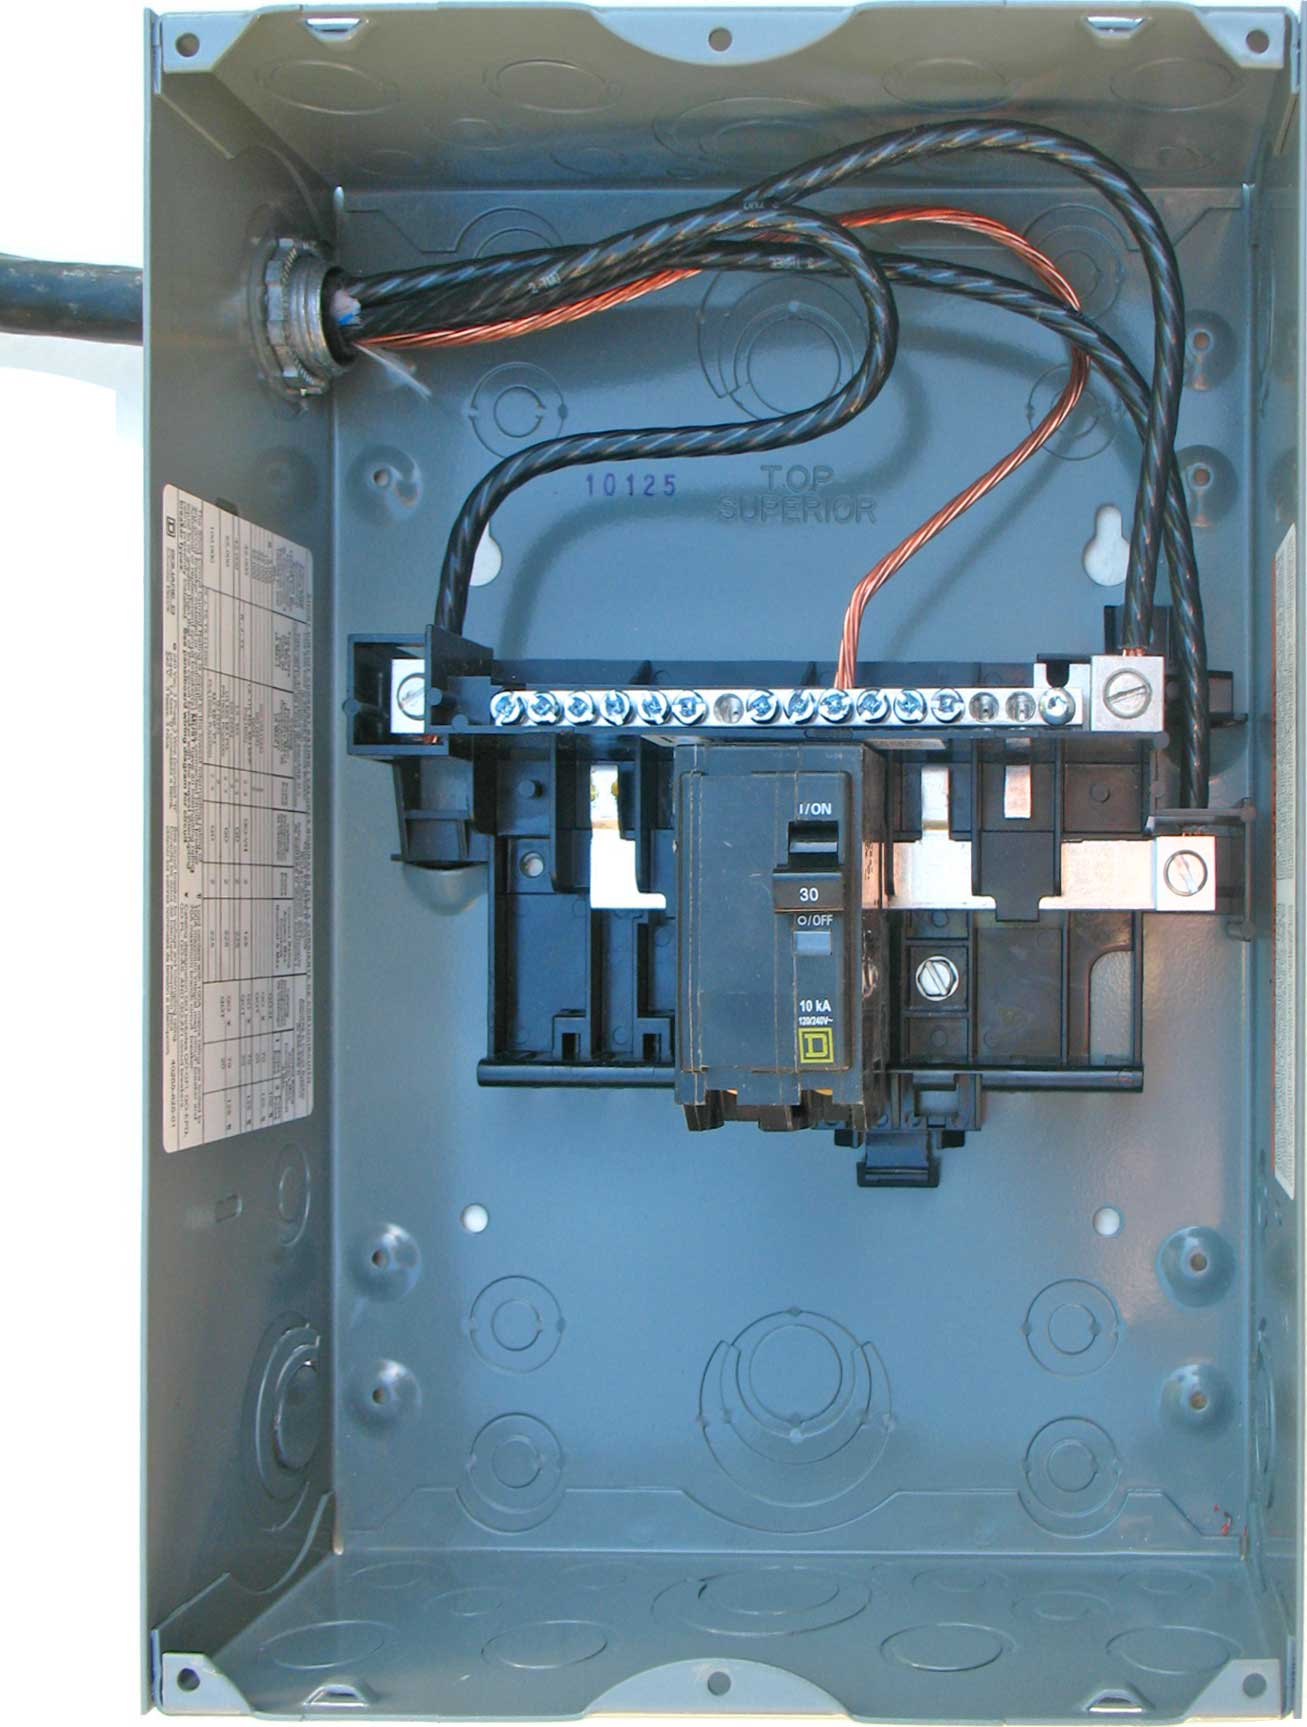 Larger image of subpanel